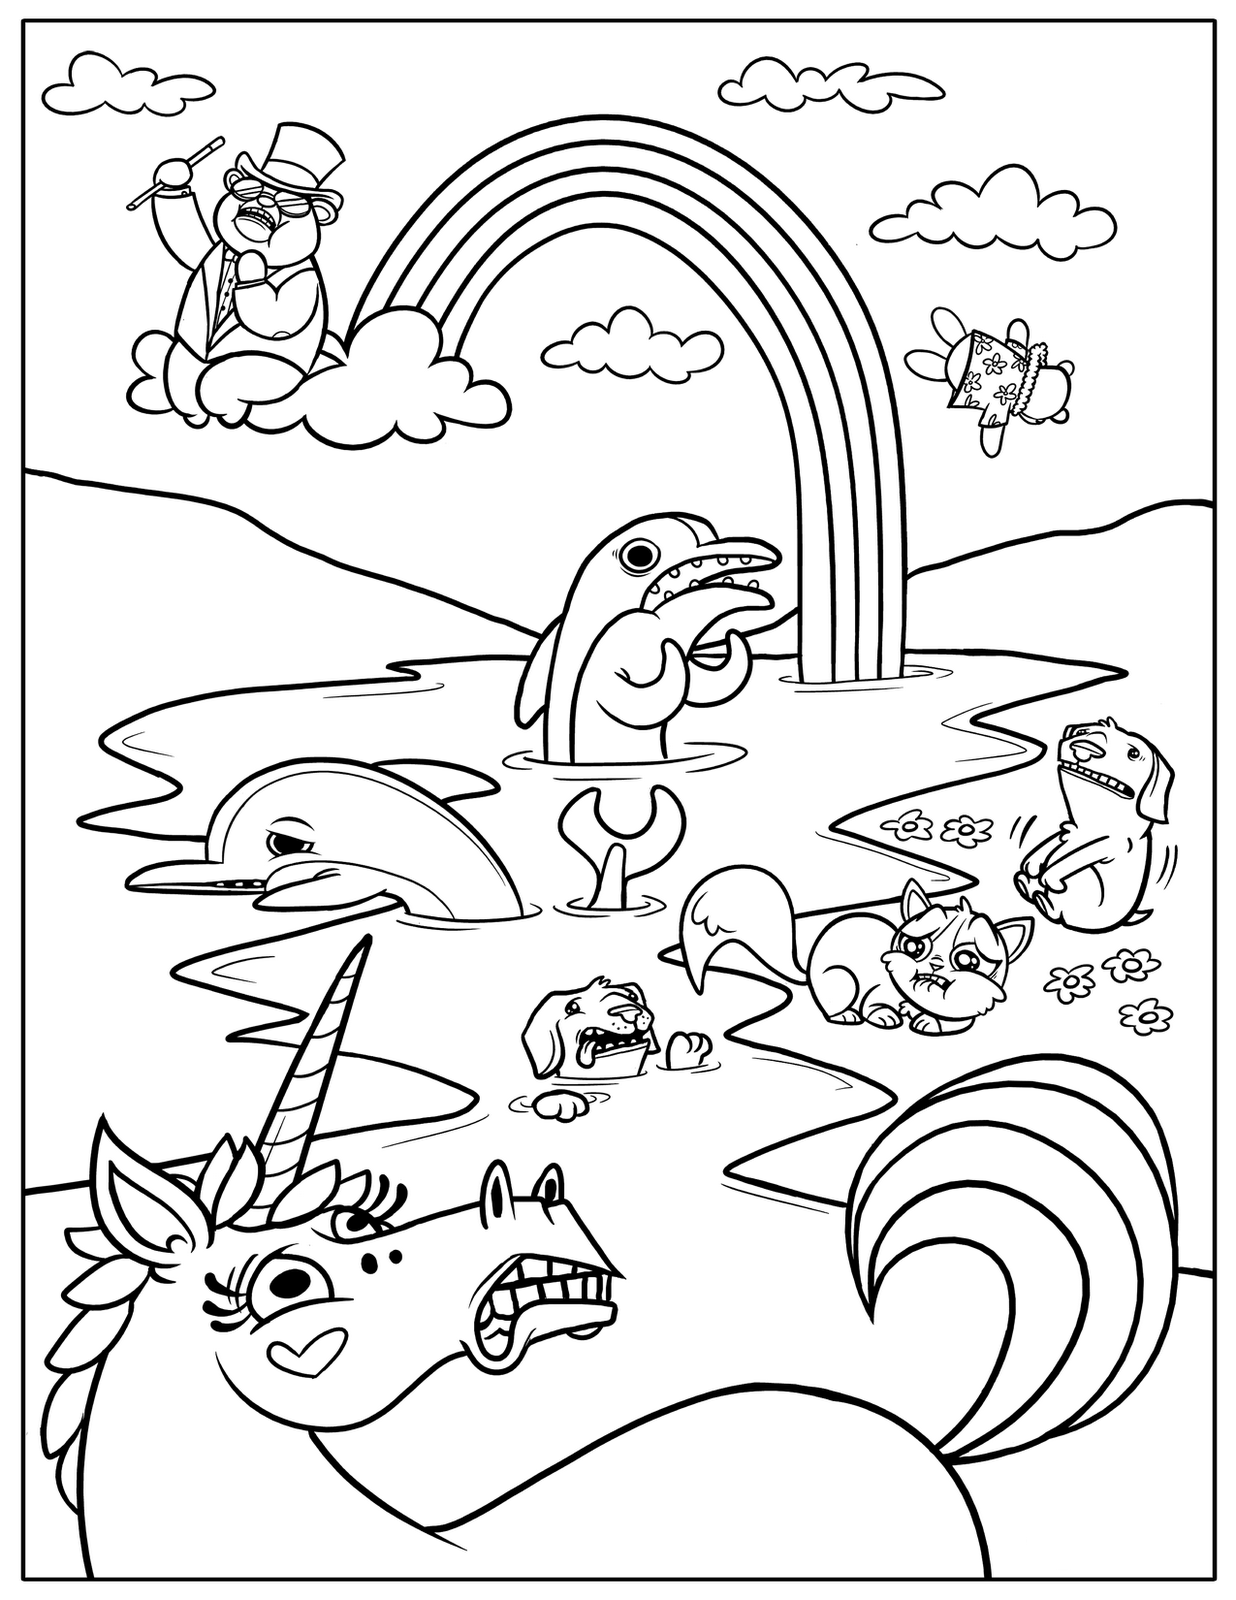 Free printable rainbow coloring pages for kids for Best coloring pages for kids